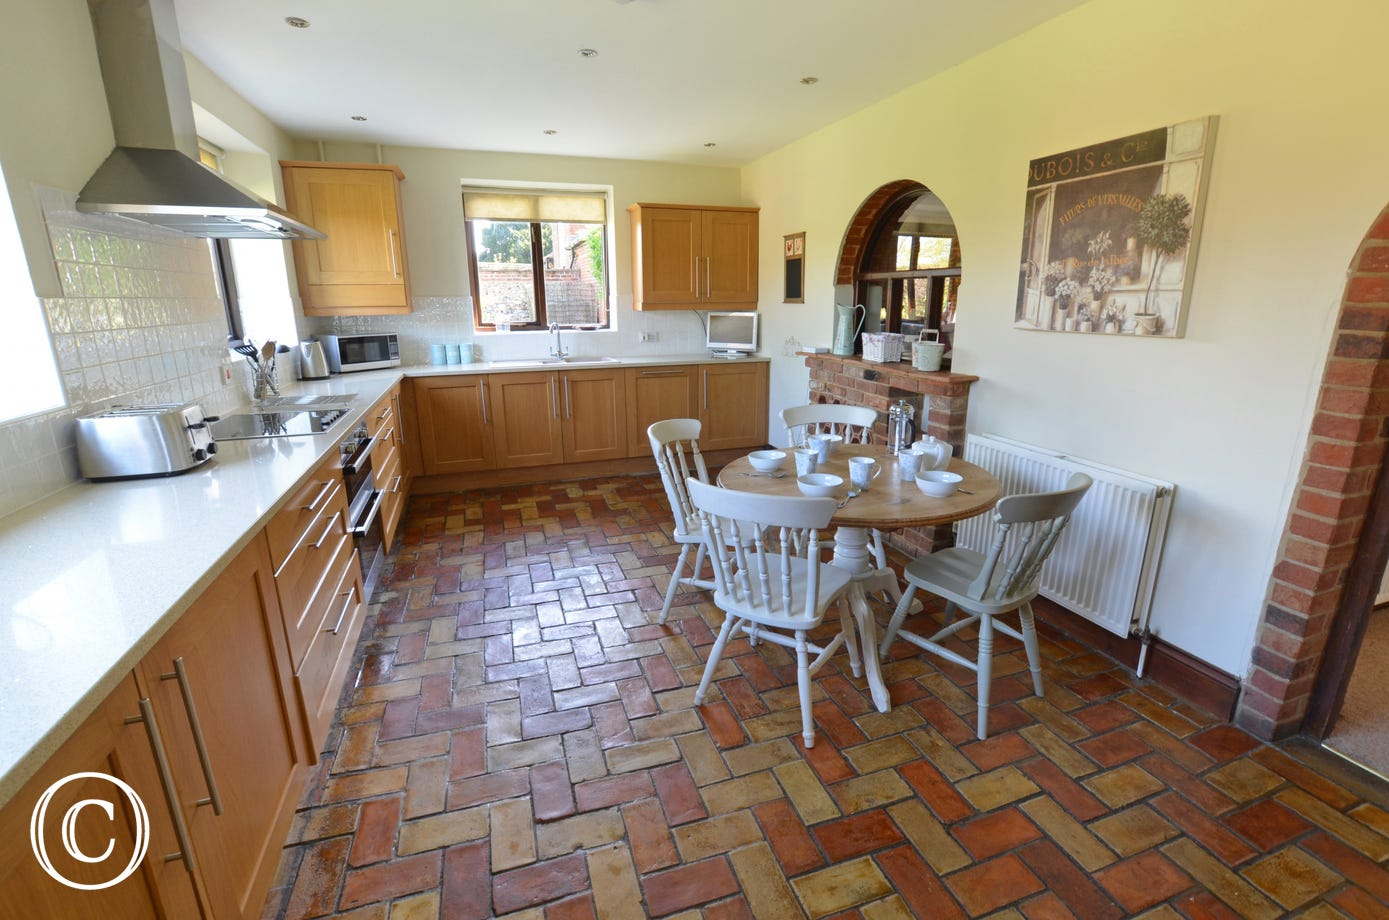 The large well appointed kitchen with modern units and plenty of worktop space